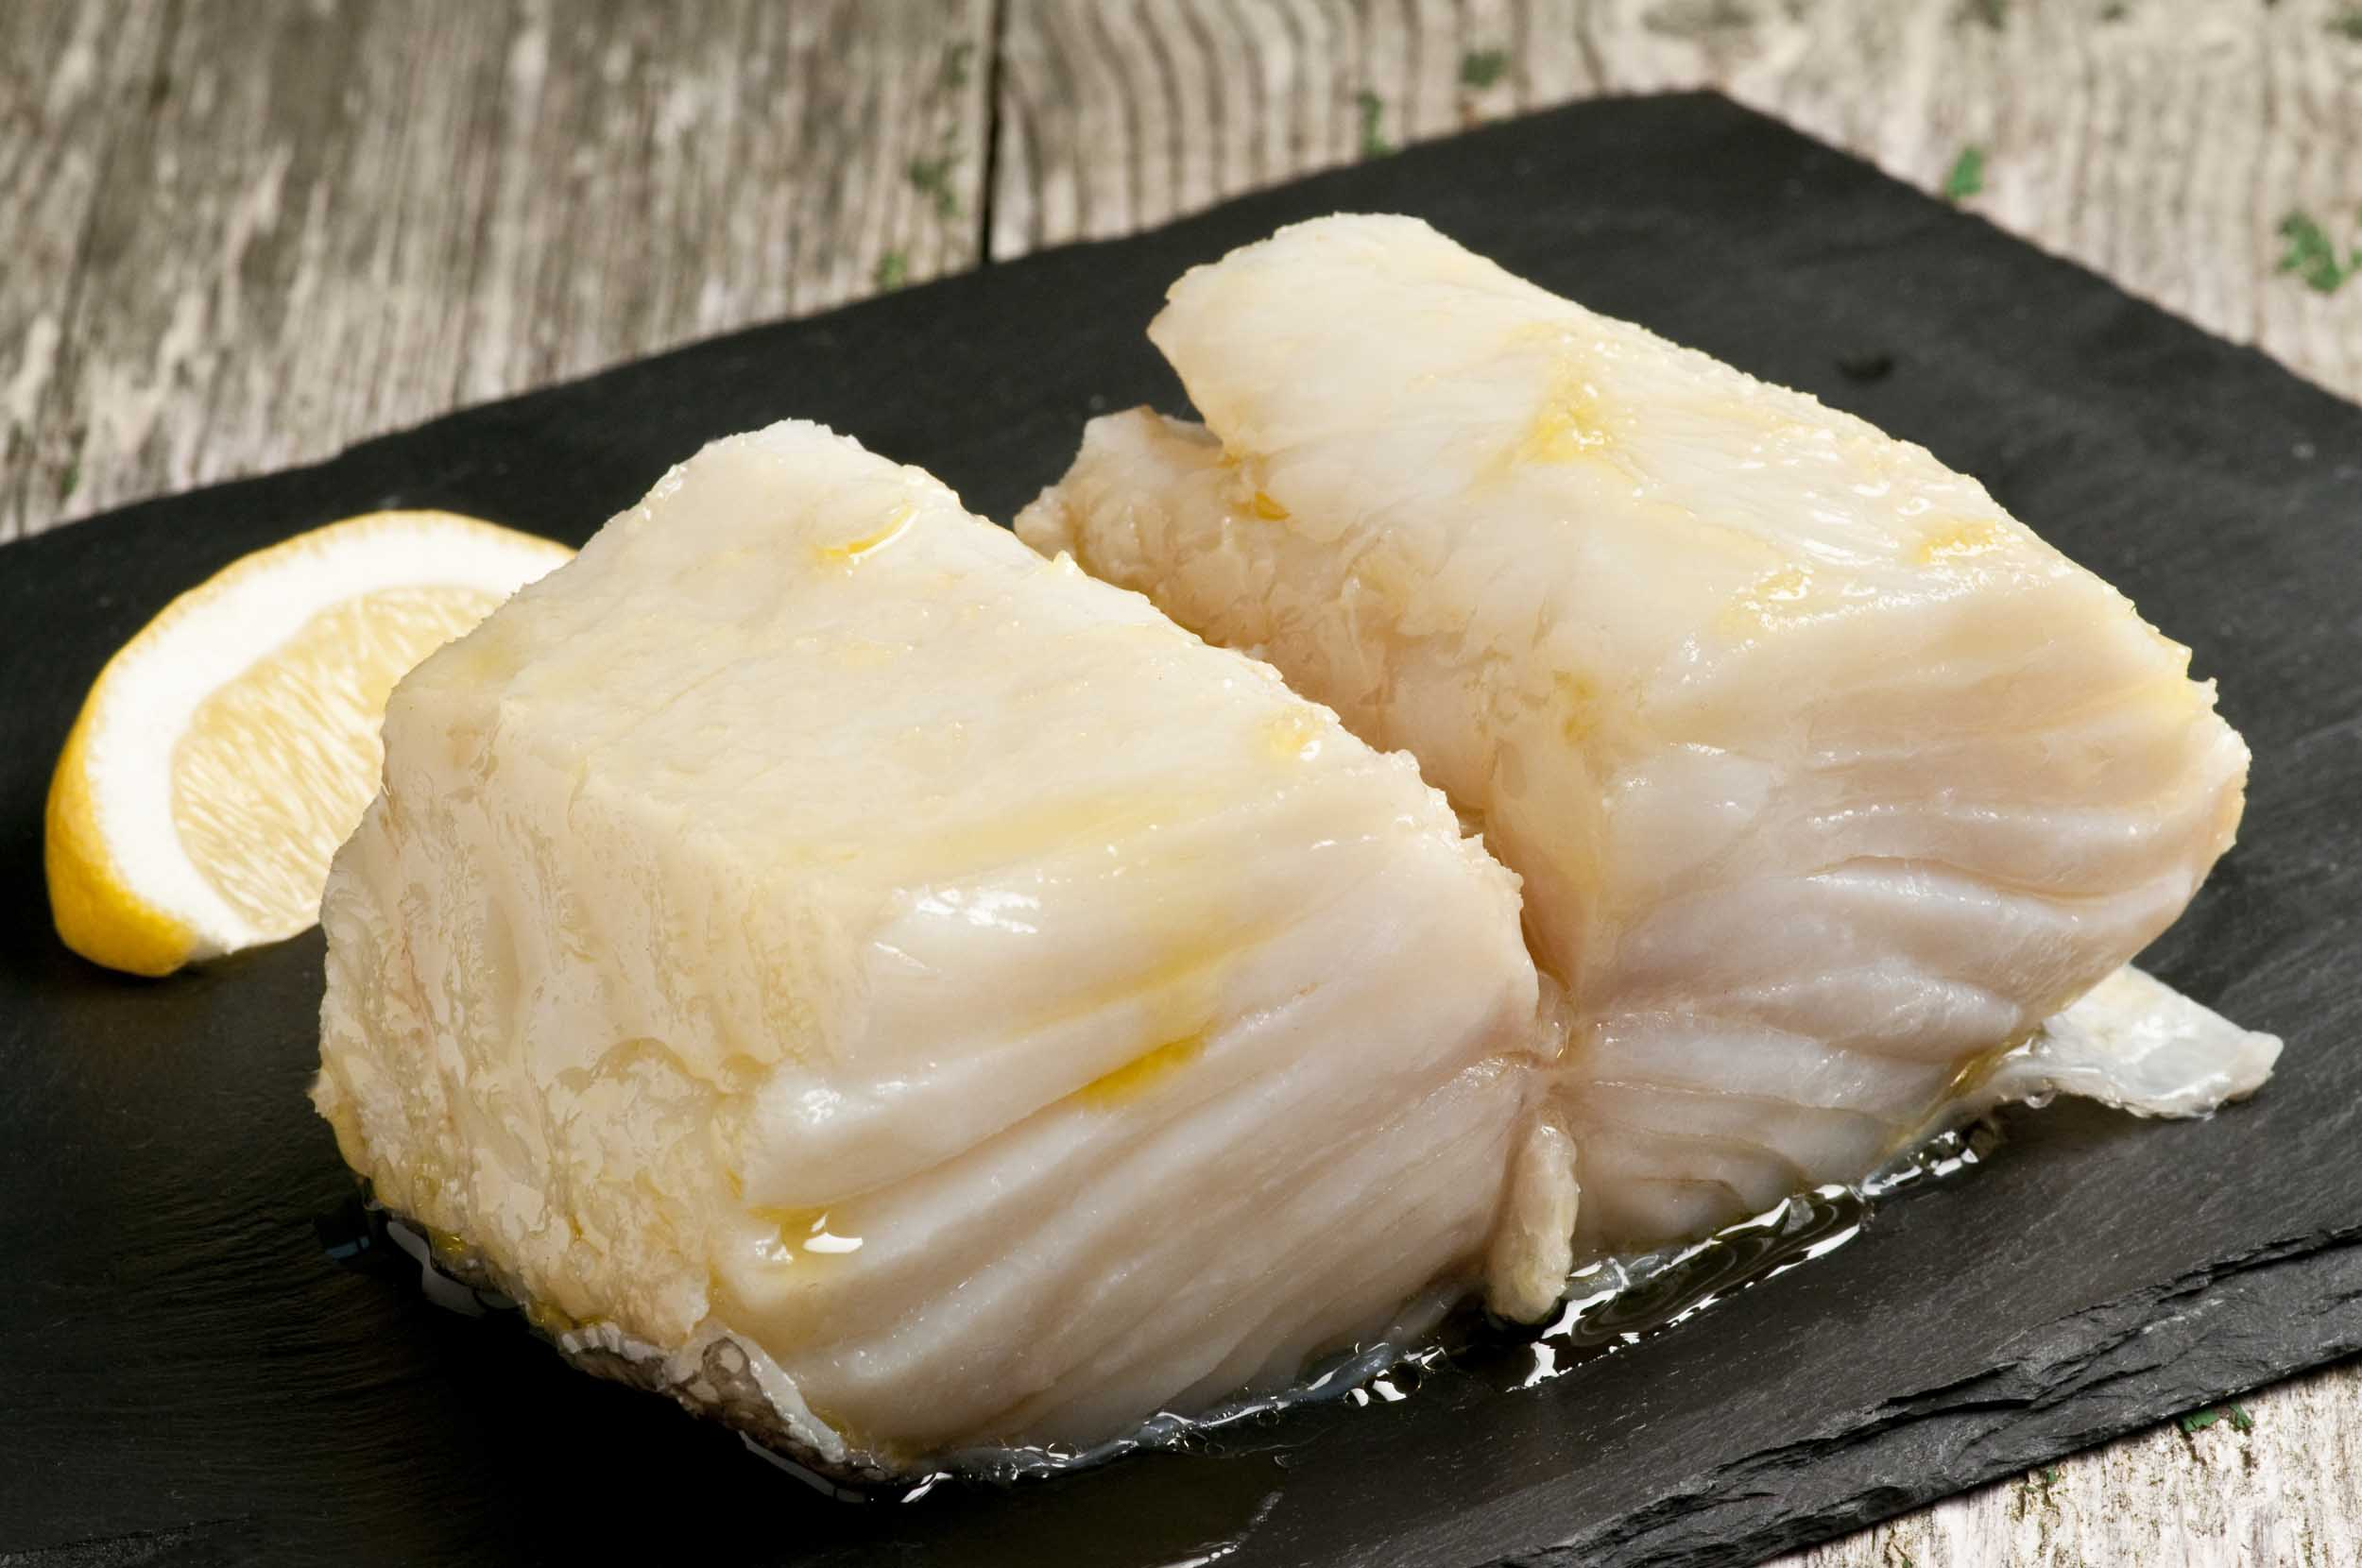 Sea Star cod loin copy.jpg